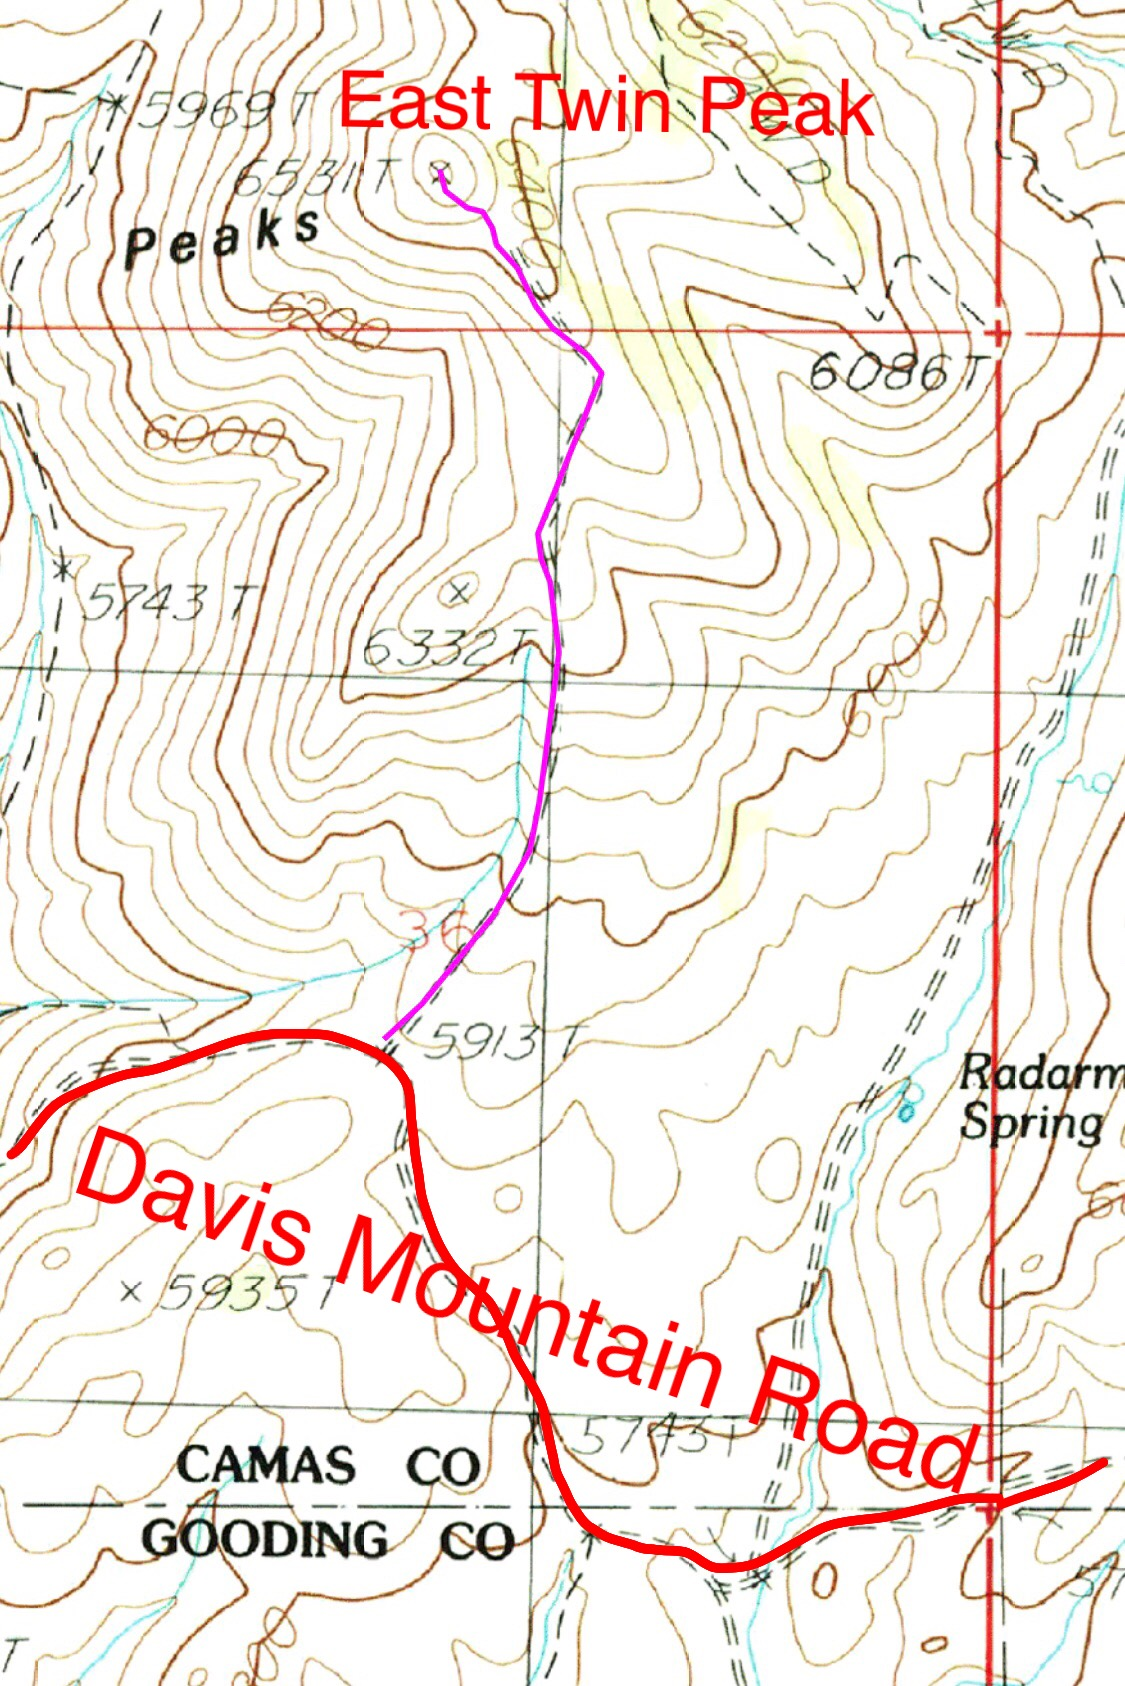 My route up East Twin Peak followed a 4WD road. Total length one way was 0.9 miles with 654 feet of gain.